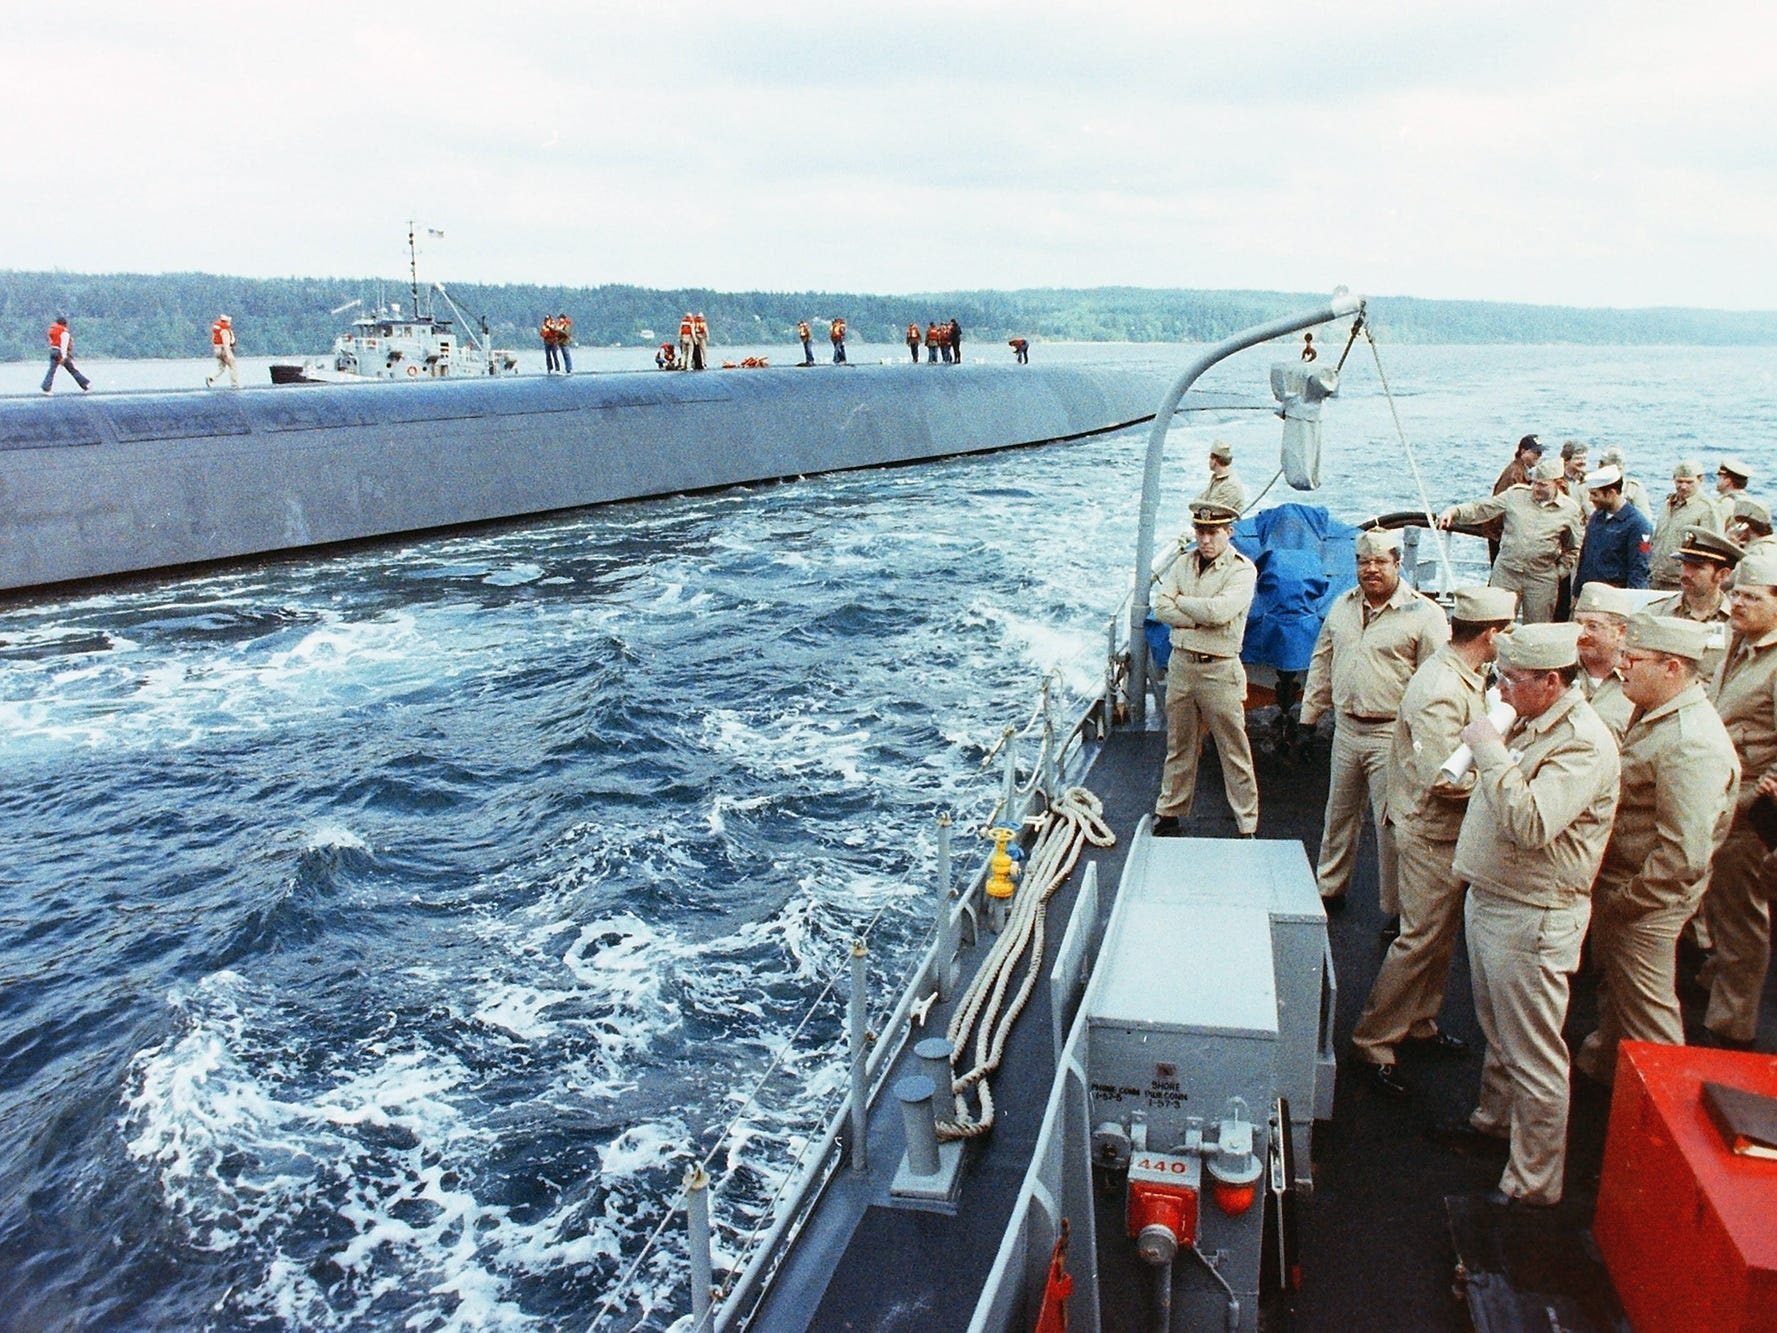 09/21/91